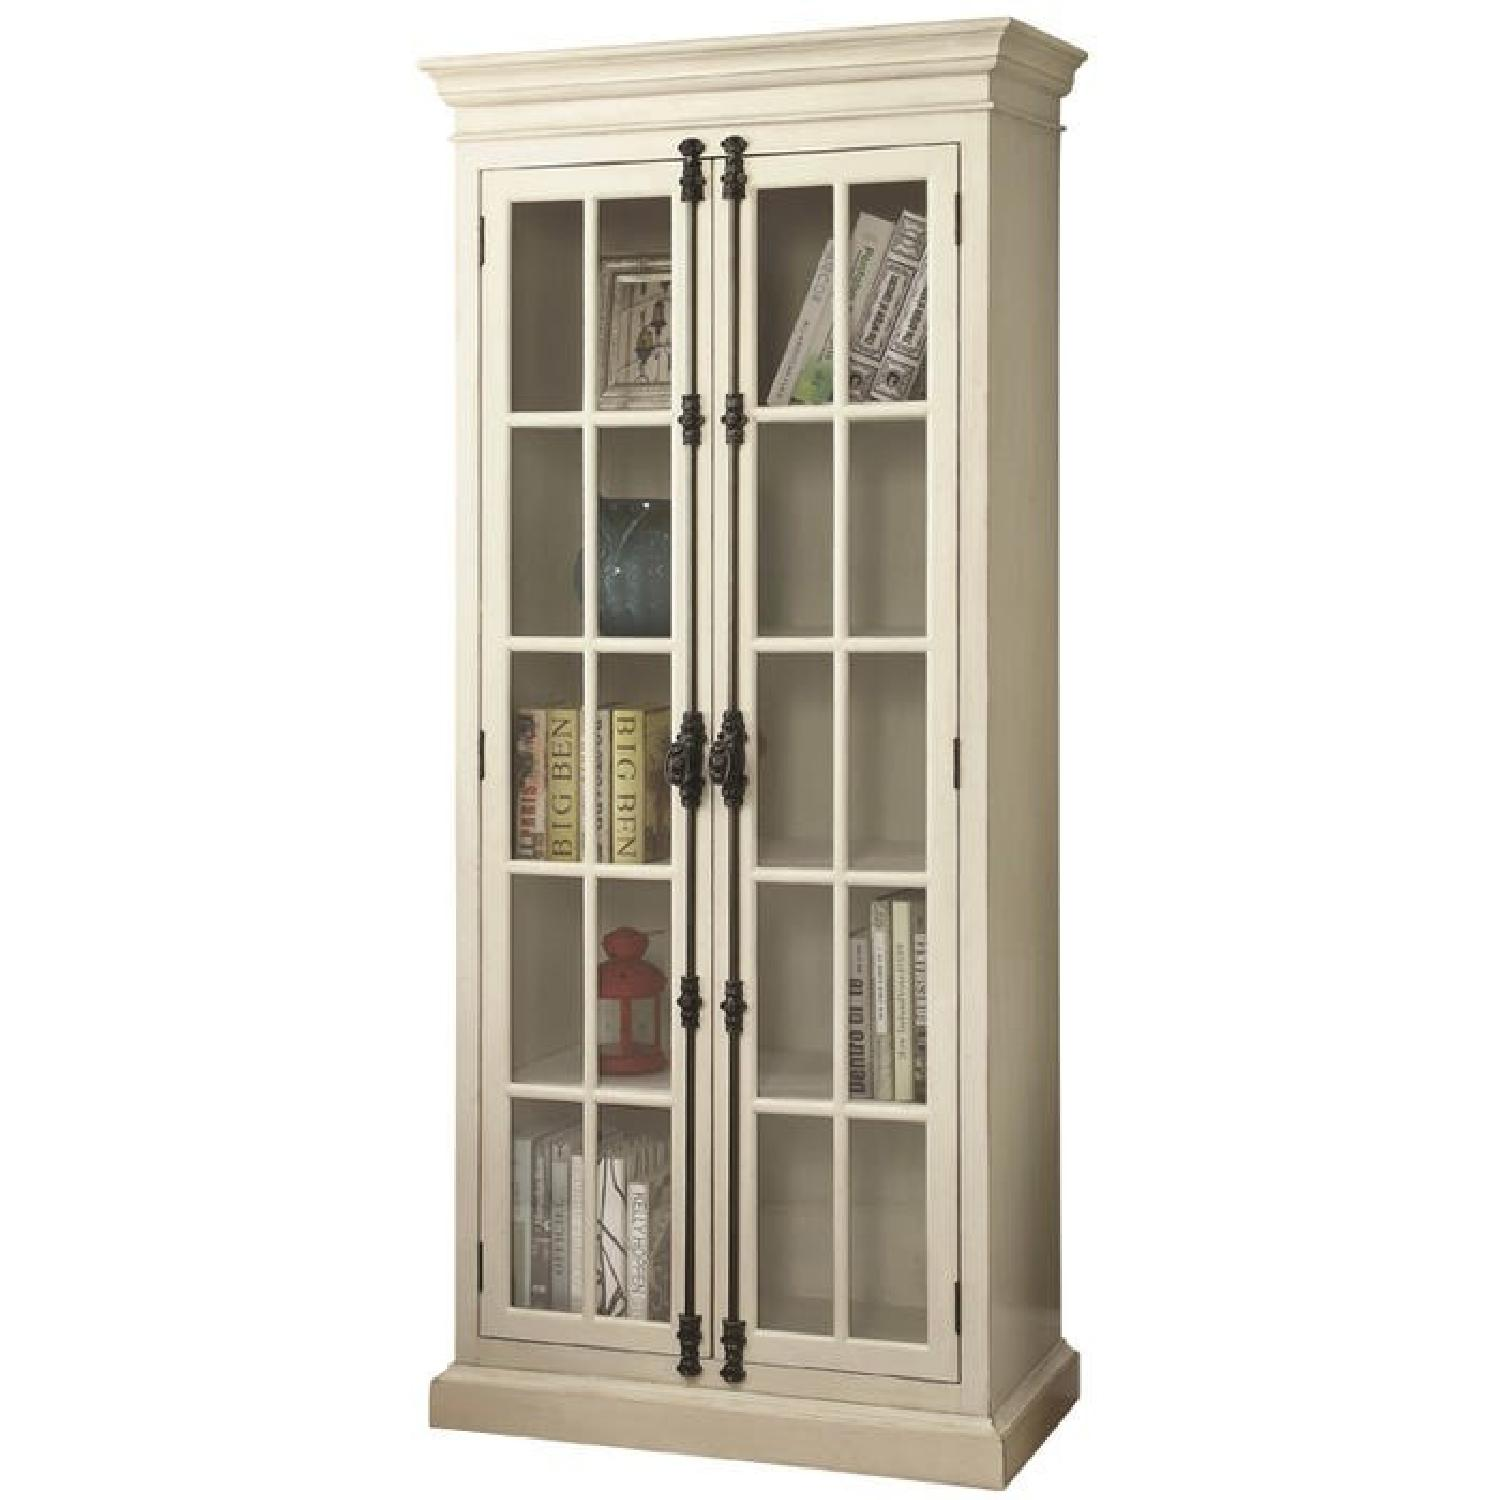 Classic French Style Cabinet w/ Shelves & Glass Doors - image-0